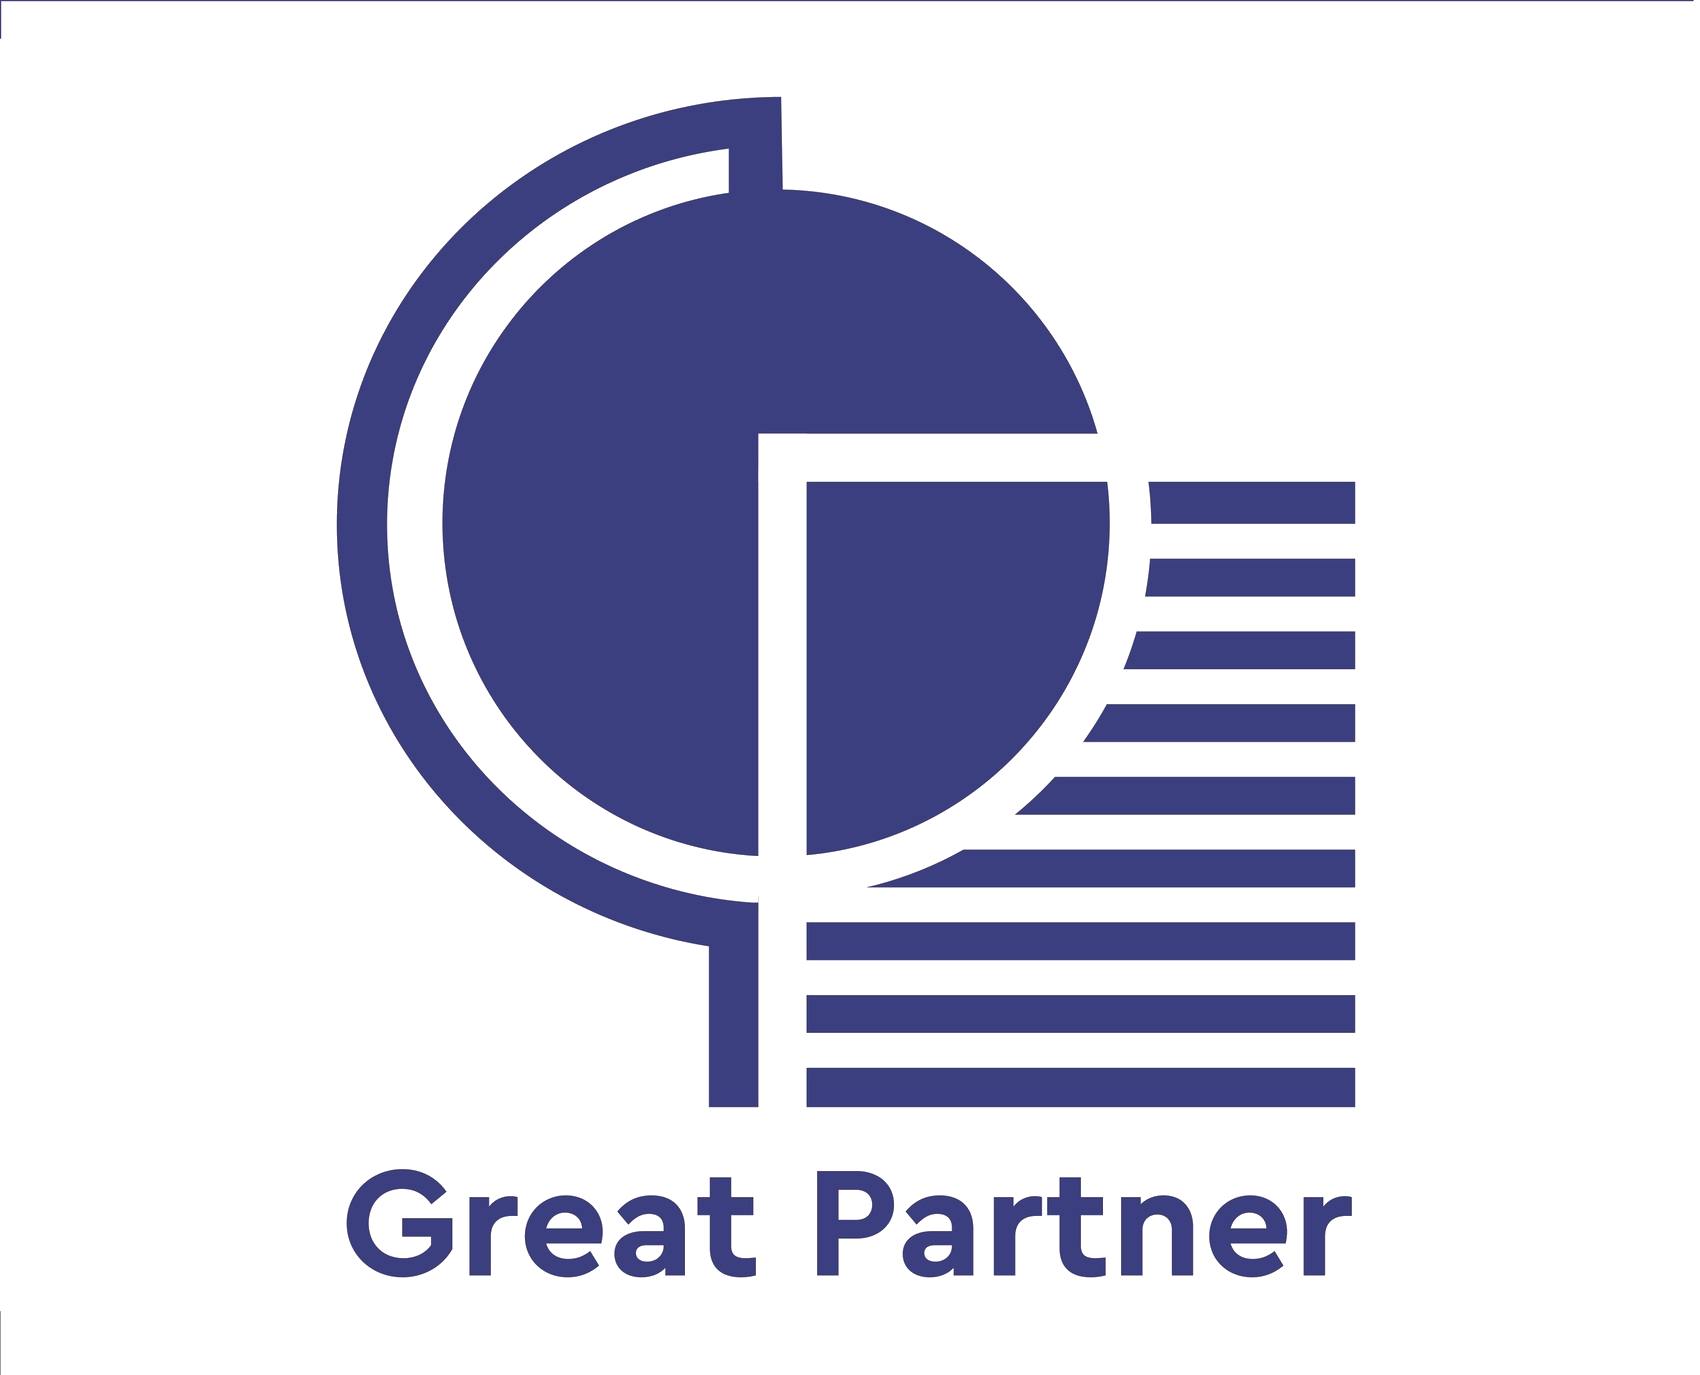 GreatPartner